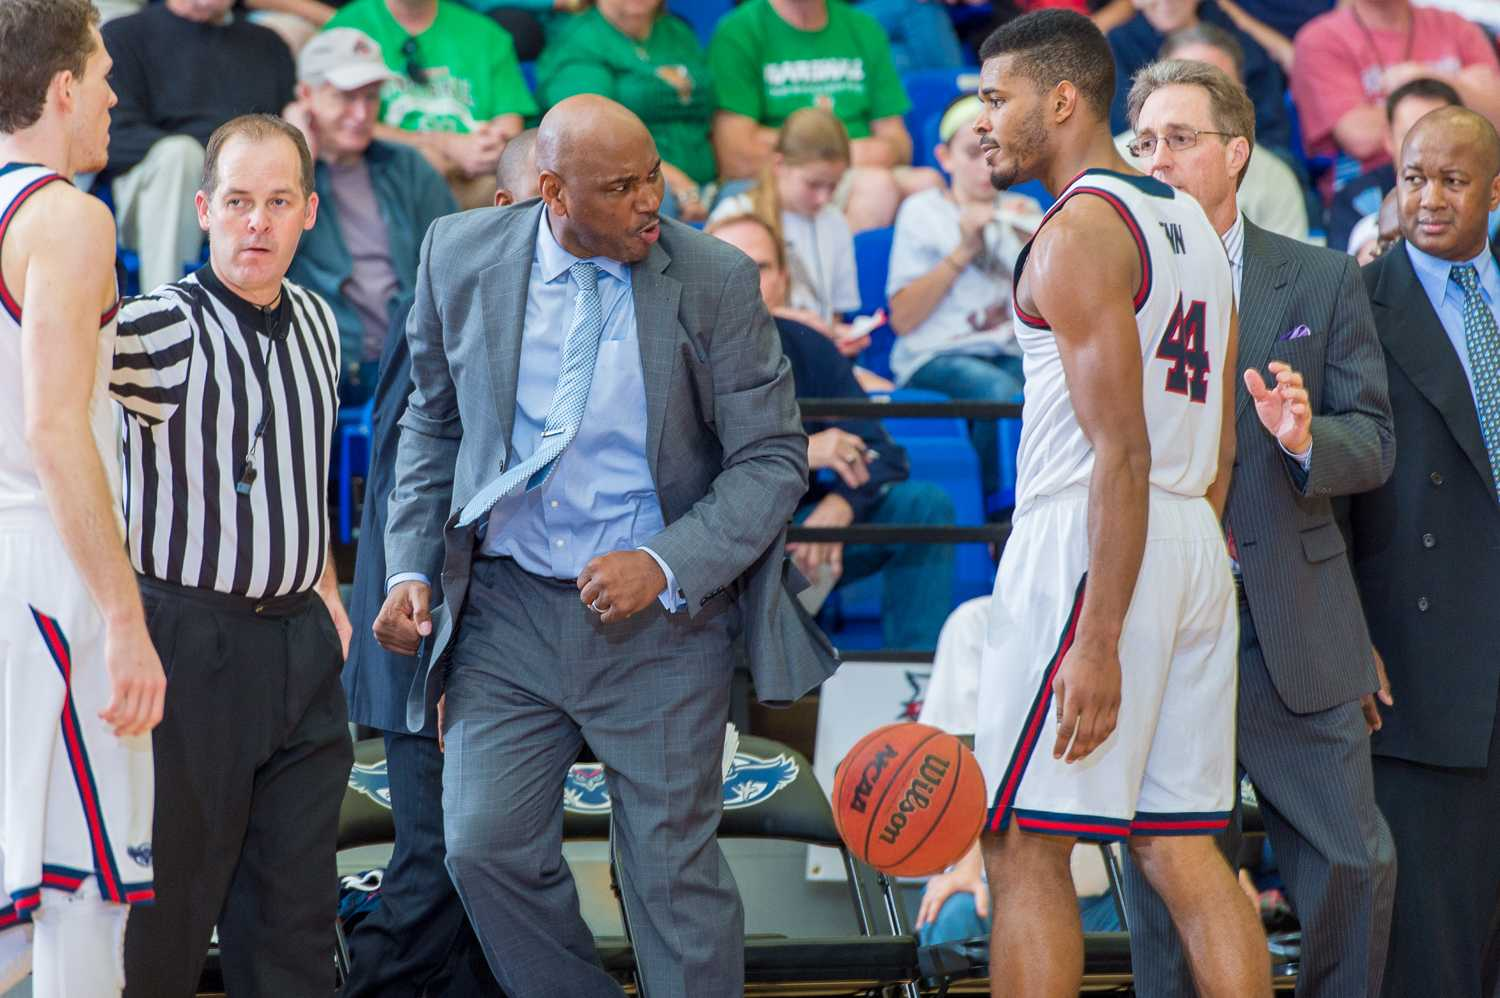 Head coach Michael Curry yells after a bad play late in the second half.